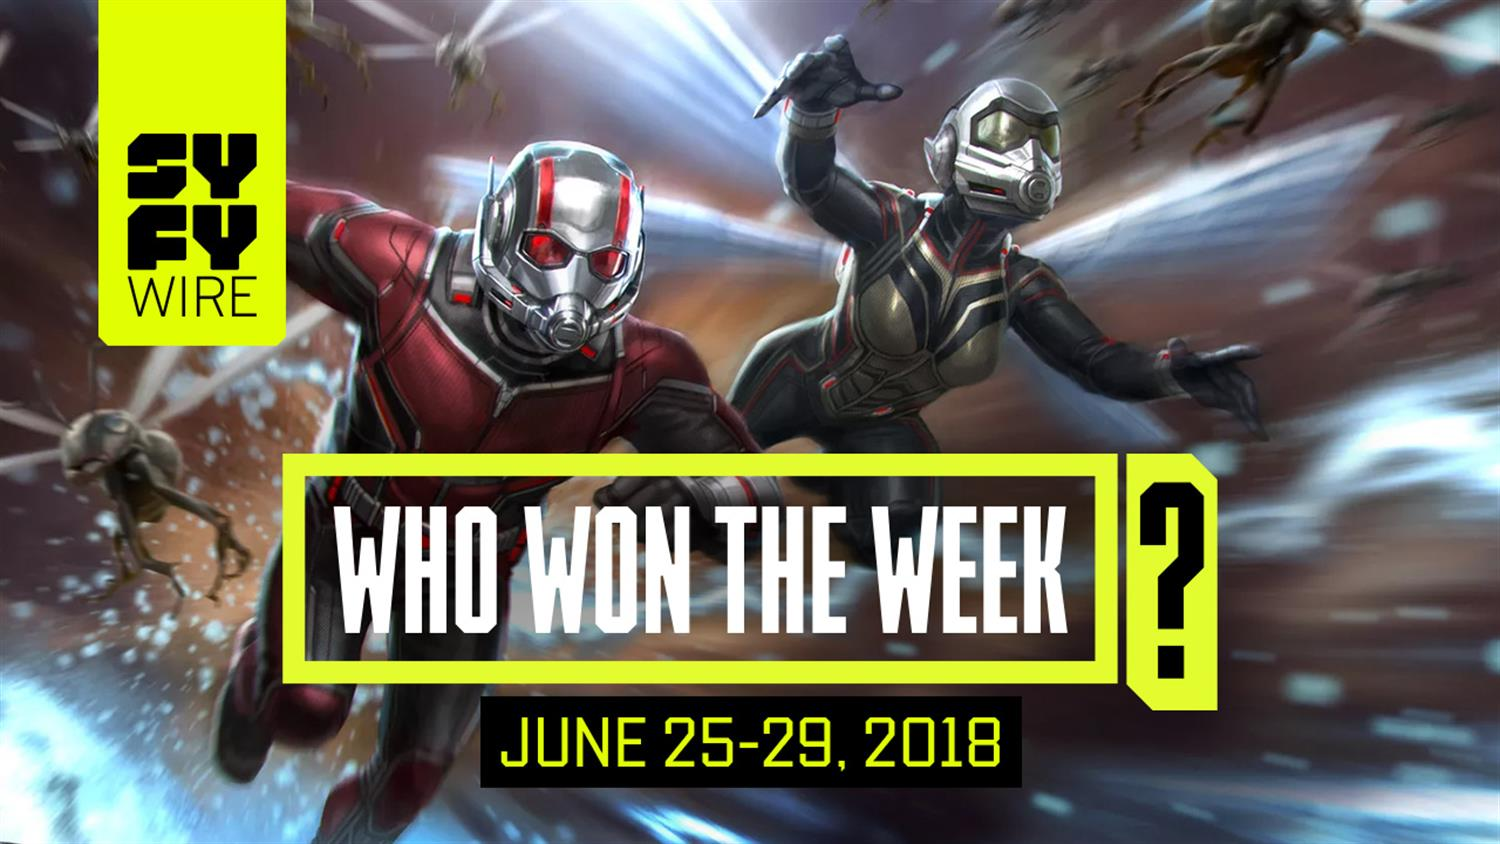 Ant-Man & The Wasp: Who Won The Week For June 25-29